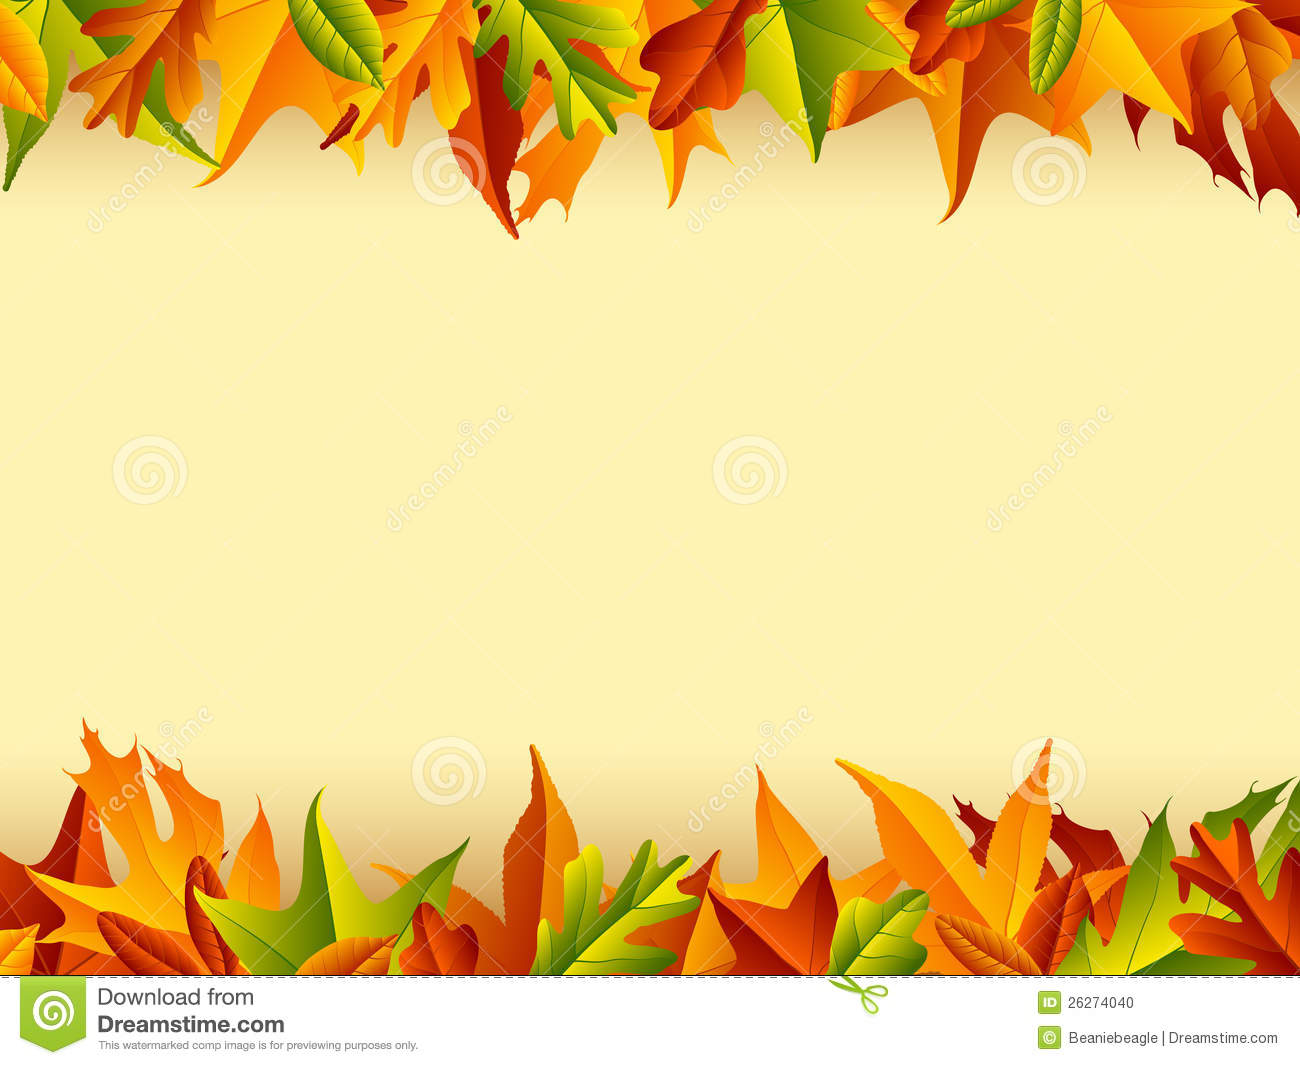 colorful Thanksgiving and autumn inspired background.